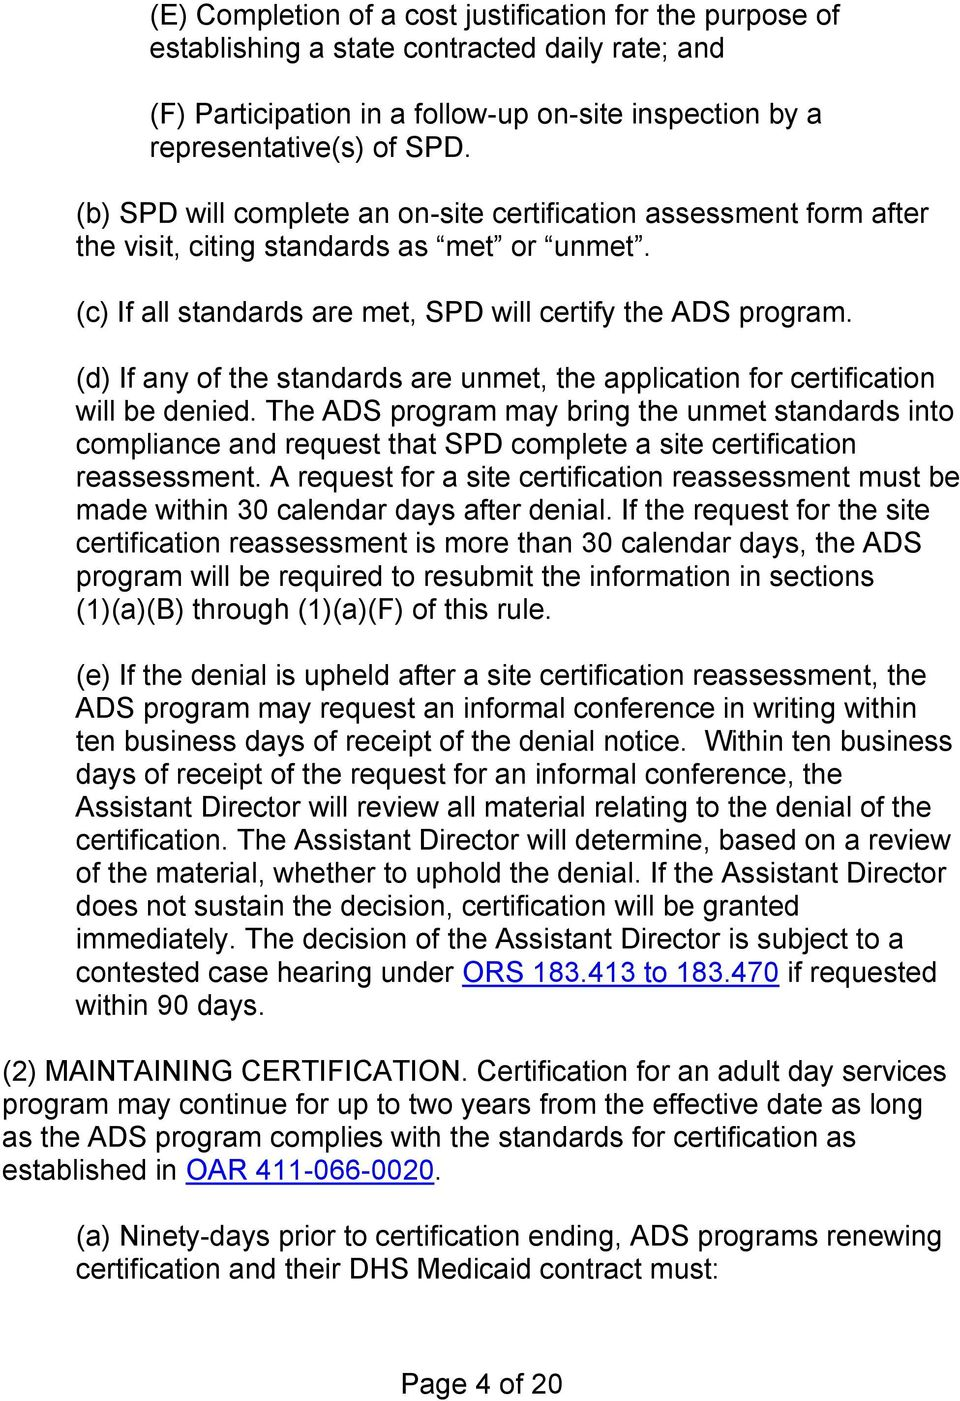 (d) If any of the standards are unmet, the application for certification will be denied.